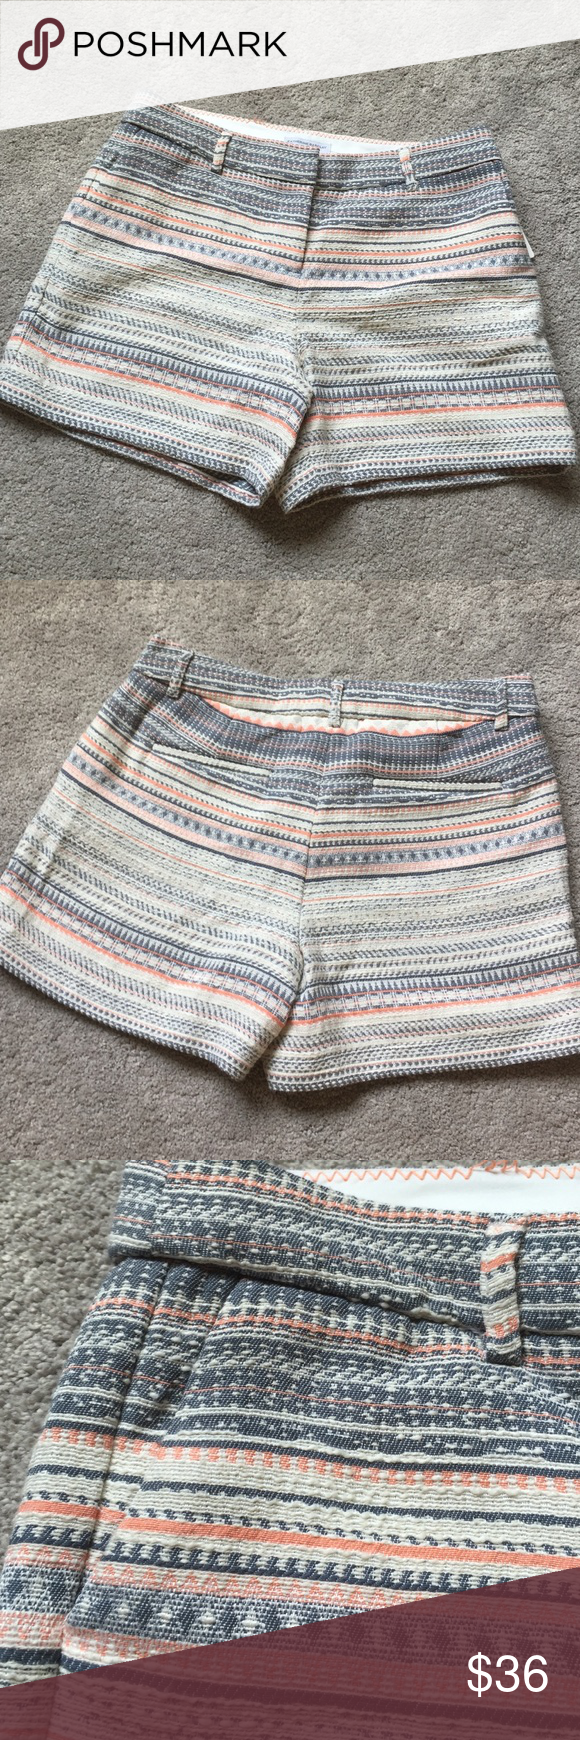 "Last chance!! Katherine Barclay Textured Shorts 16"" waist, 4.5"" inseam. Stitching on inside back coming off. Priced accordingly. Shorts are in excellent condition. Brand new. Katherine Barclay Shorts"